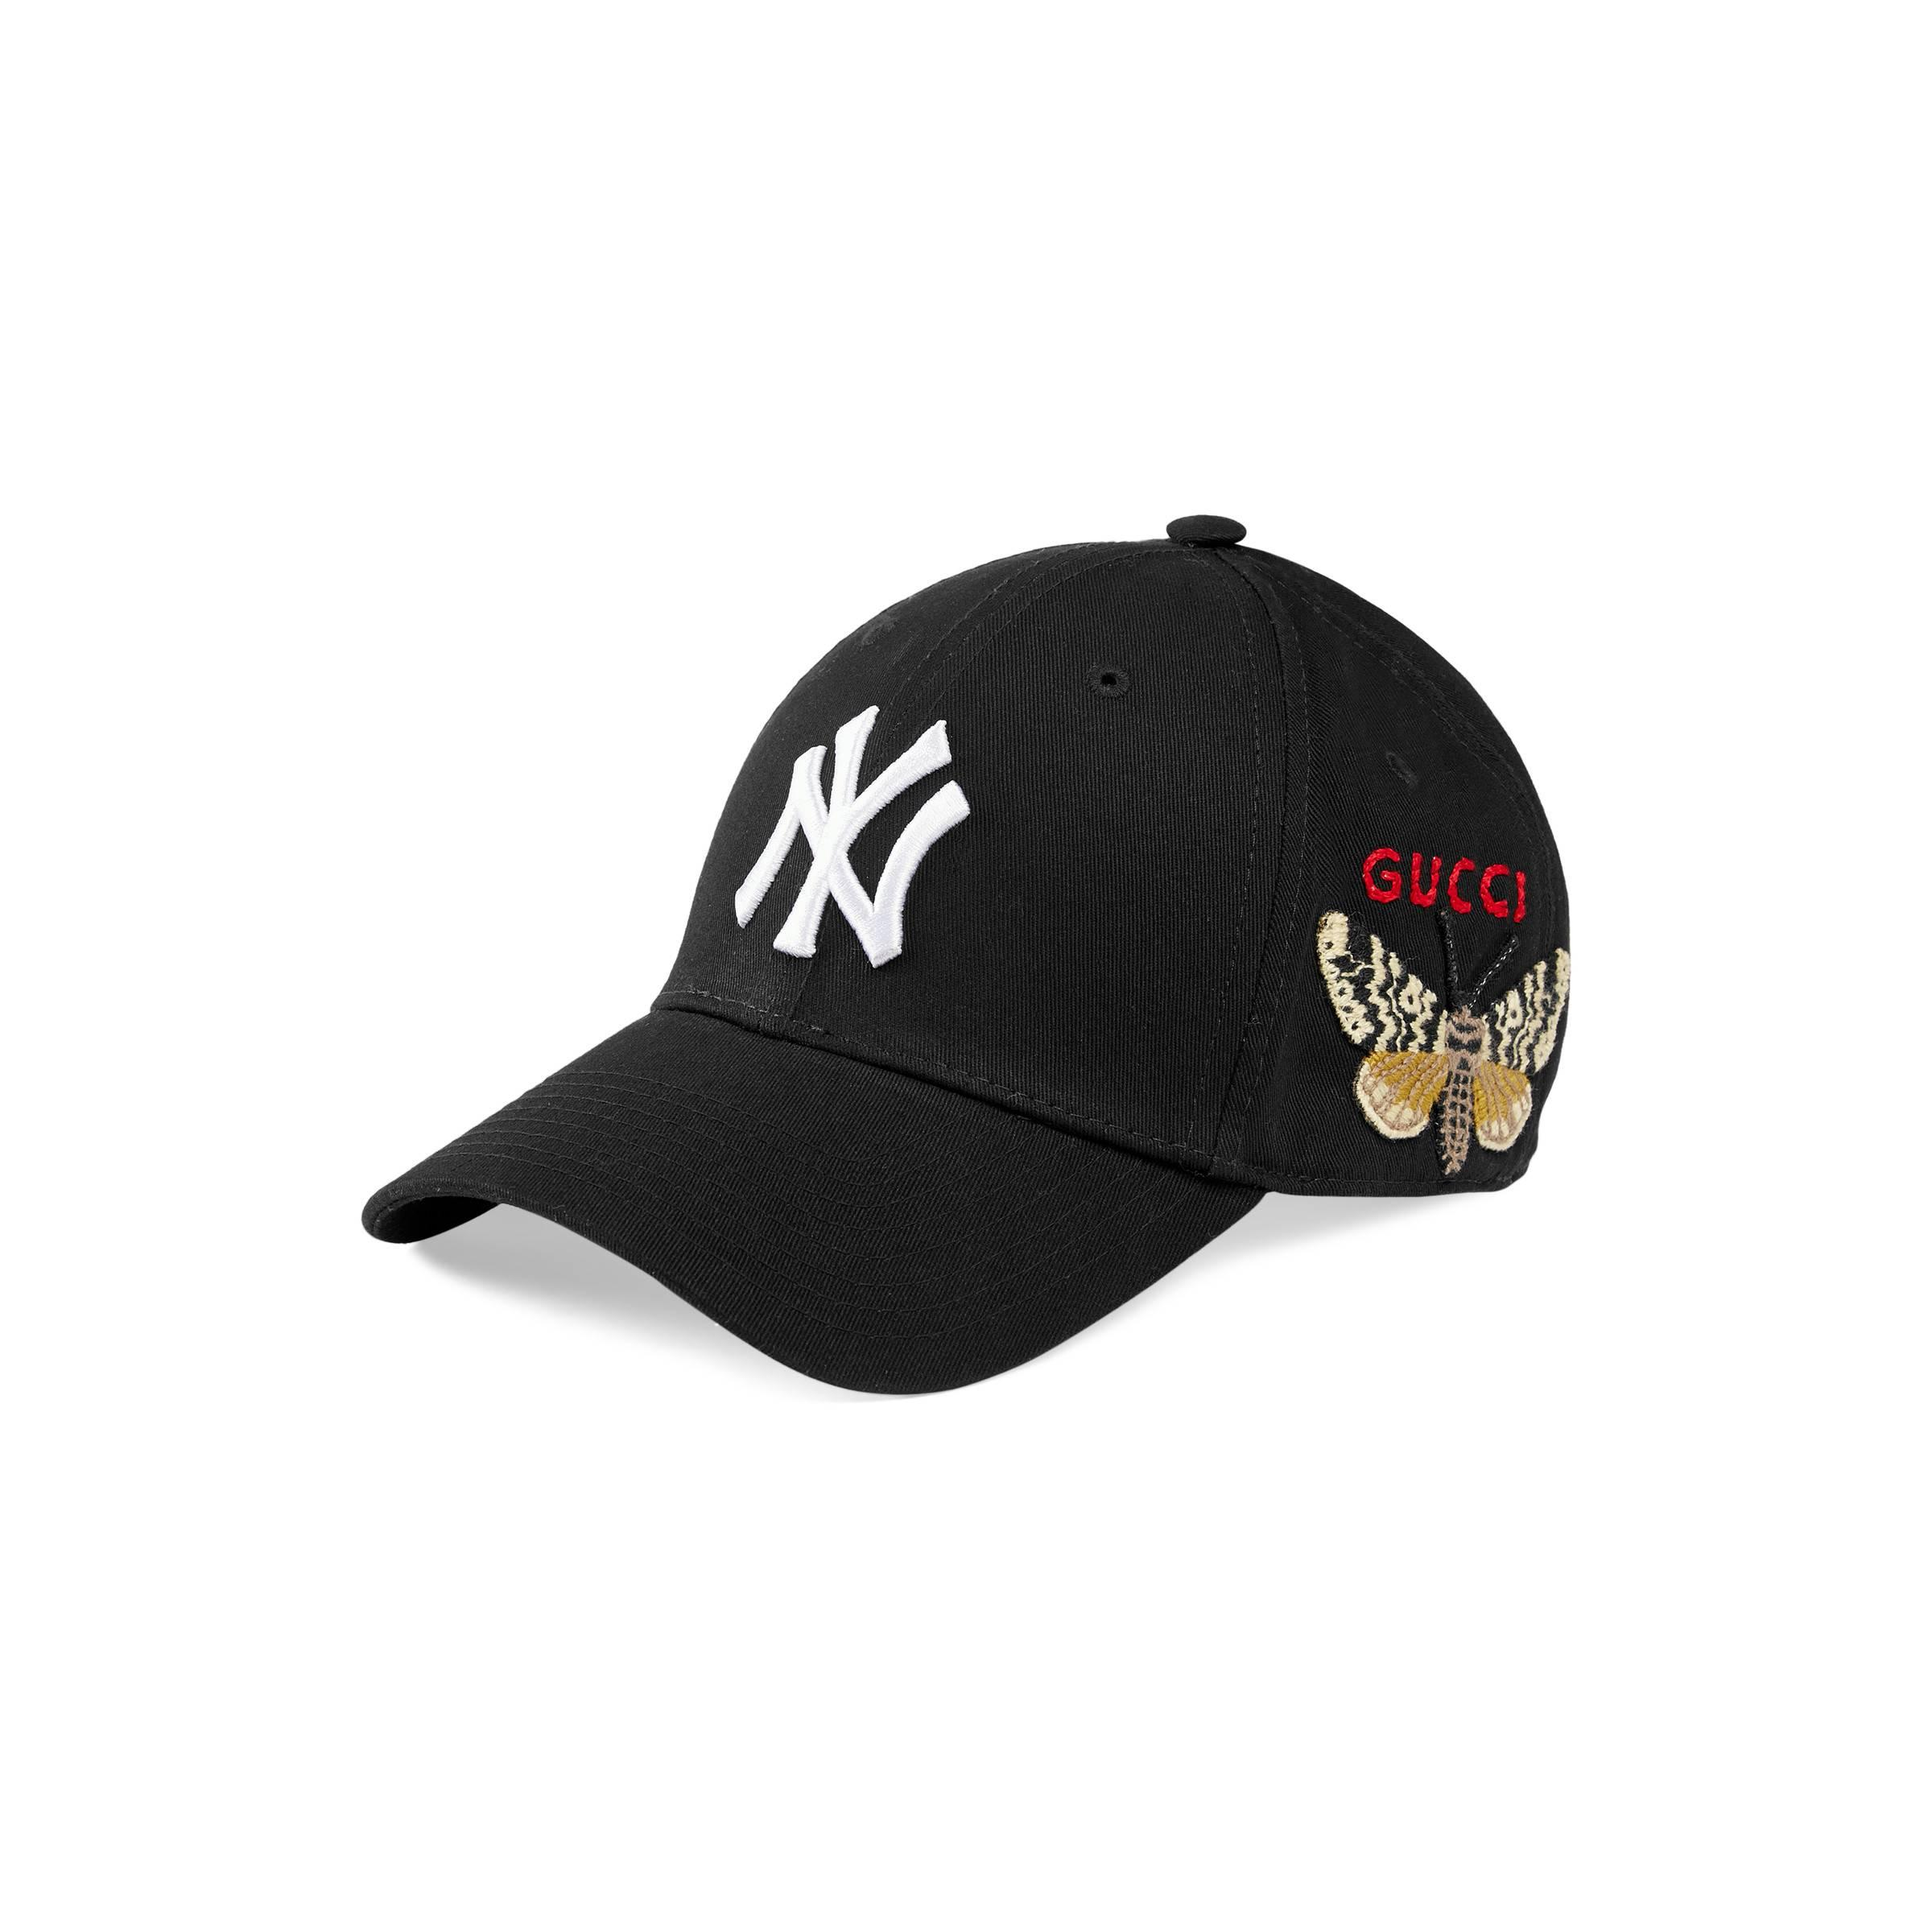 74784fcc7b38c Gucci - Black Gorra de Béisbol New York YankeesTM for Men - Lyst. Ver en  pantalla completa